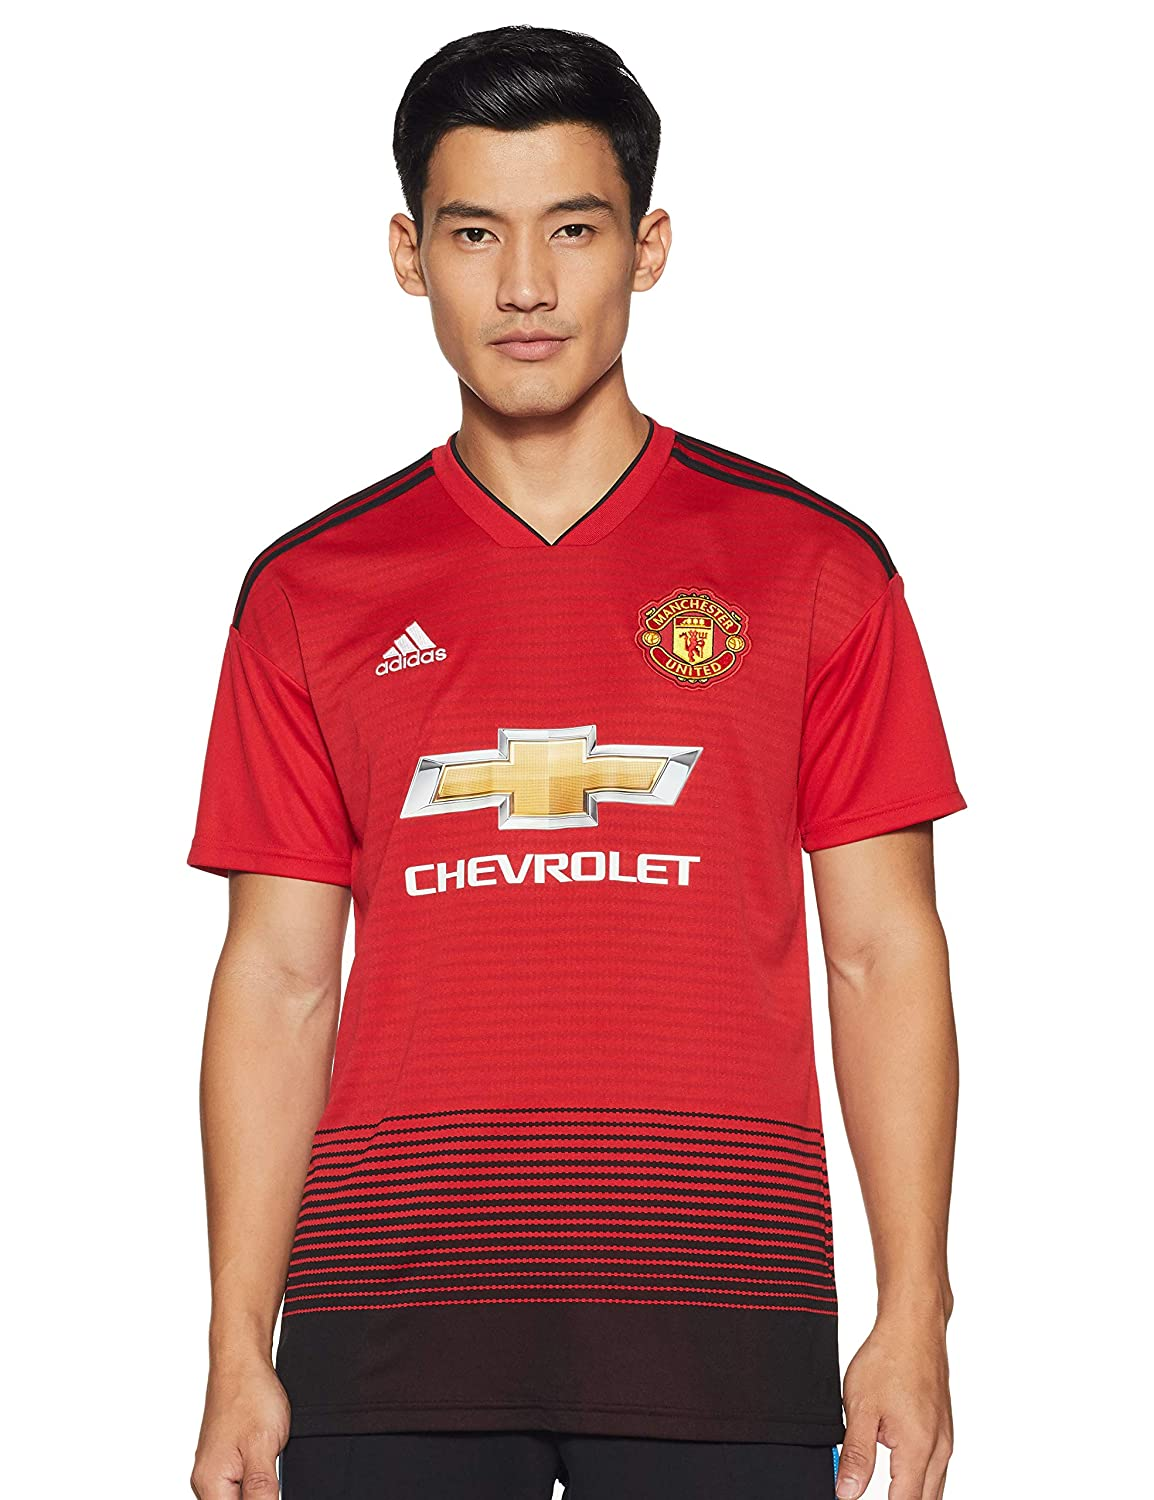 the best attitude af32c c2ed1 adidas 2018-2019 Man Utd Home Football Shirt